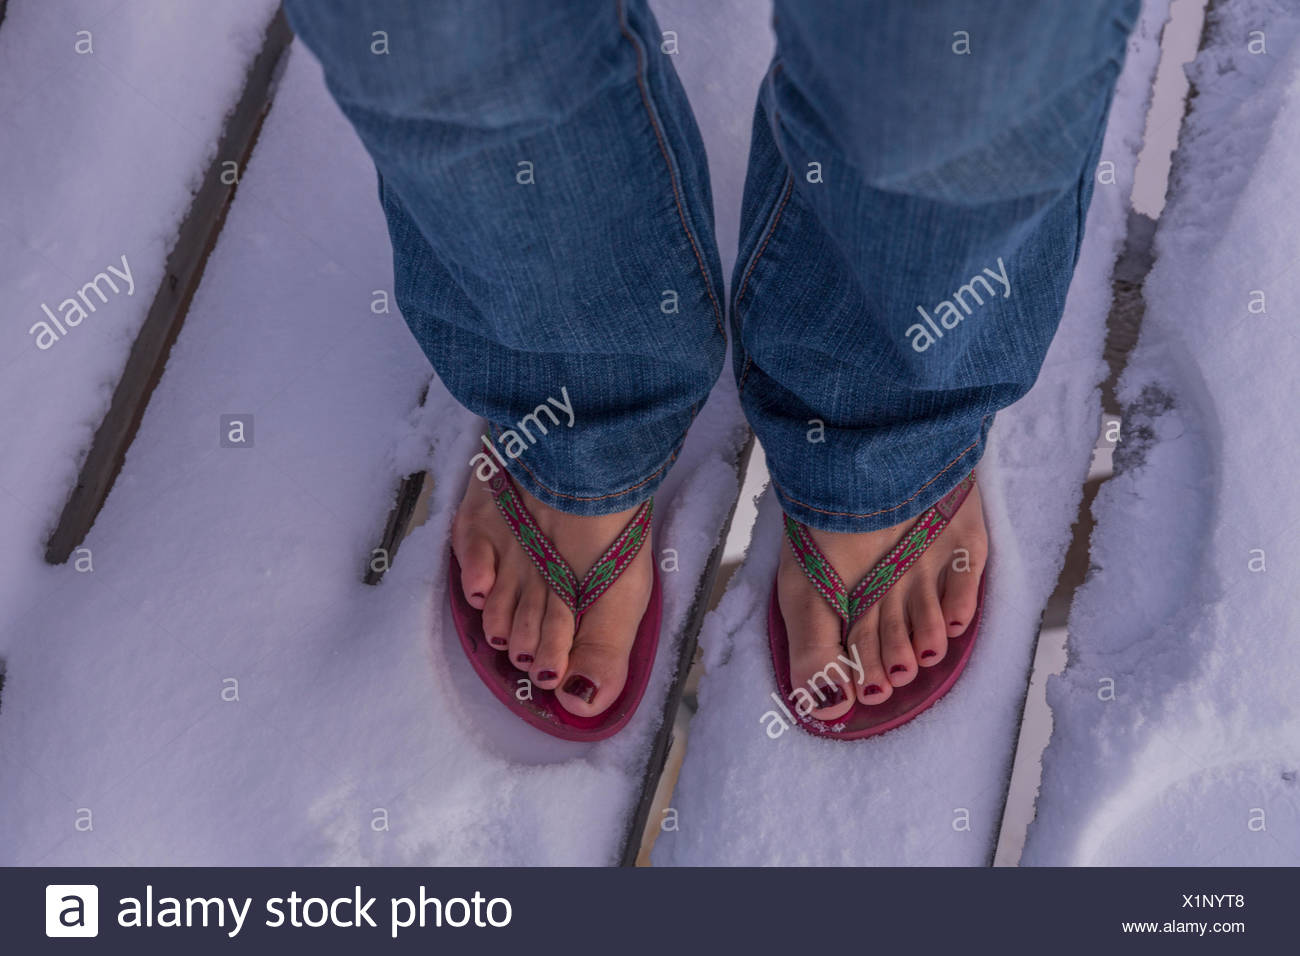 76d7b984906d9 Woman s feet standing in the snow wearing flip flops  Churchill ...